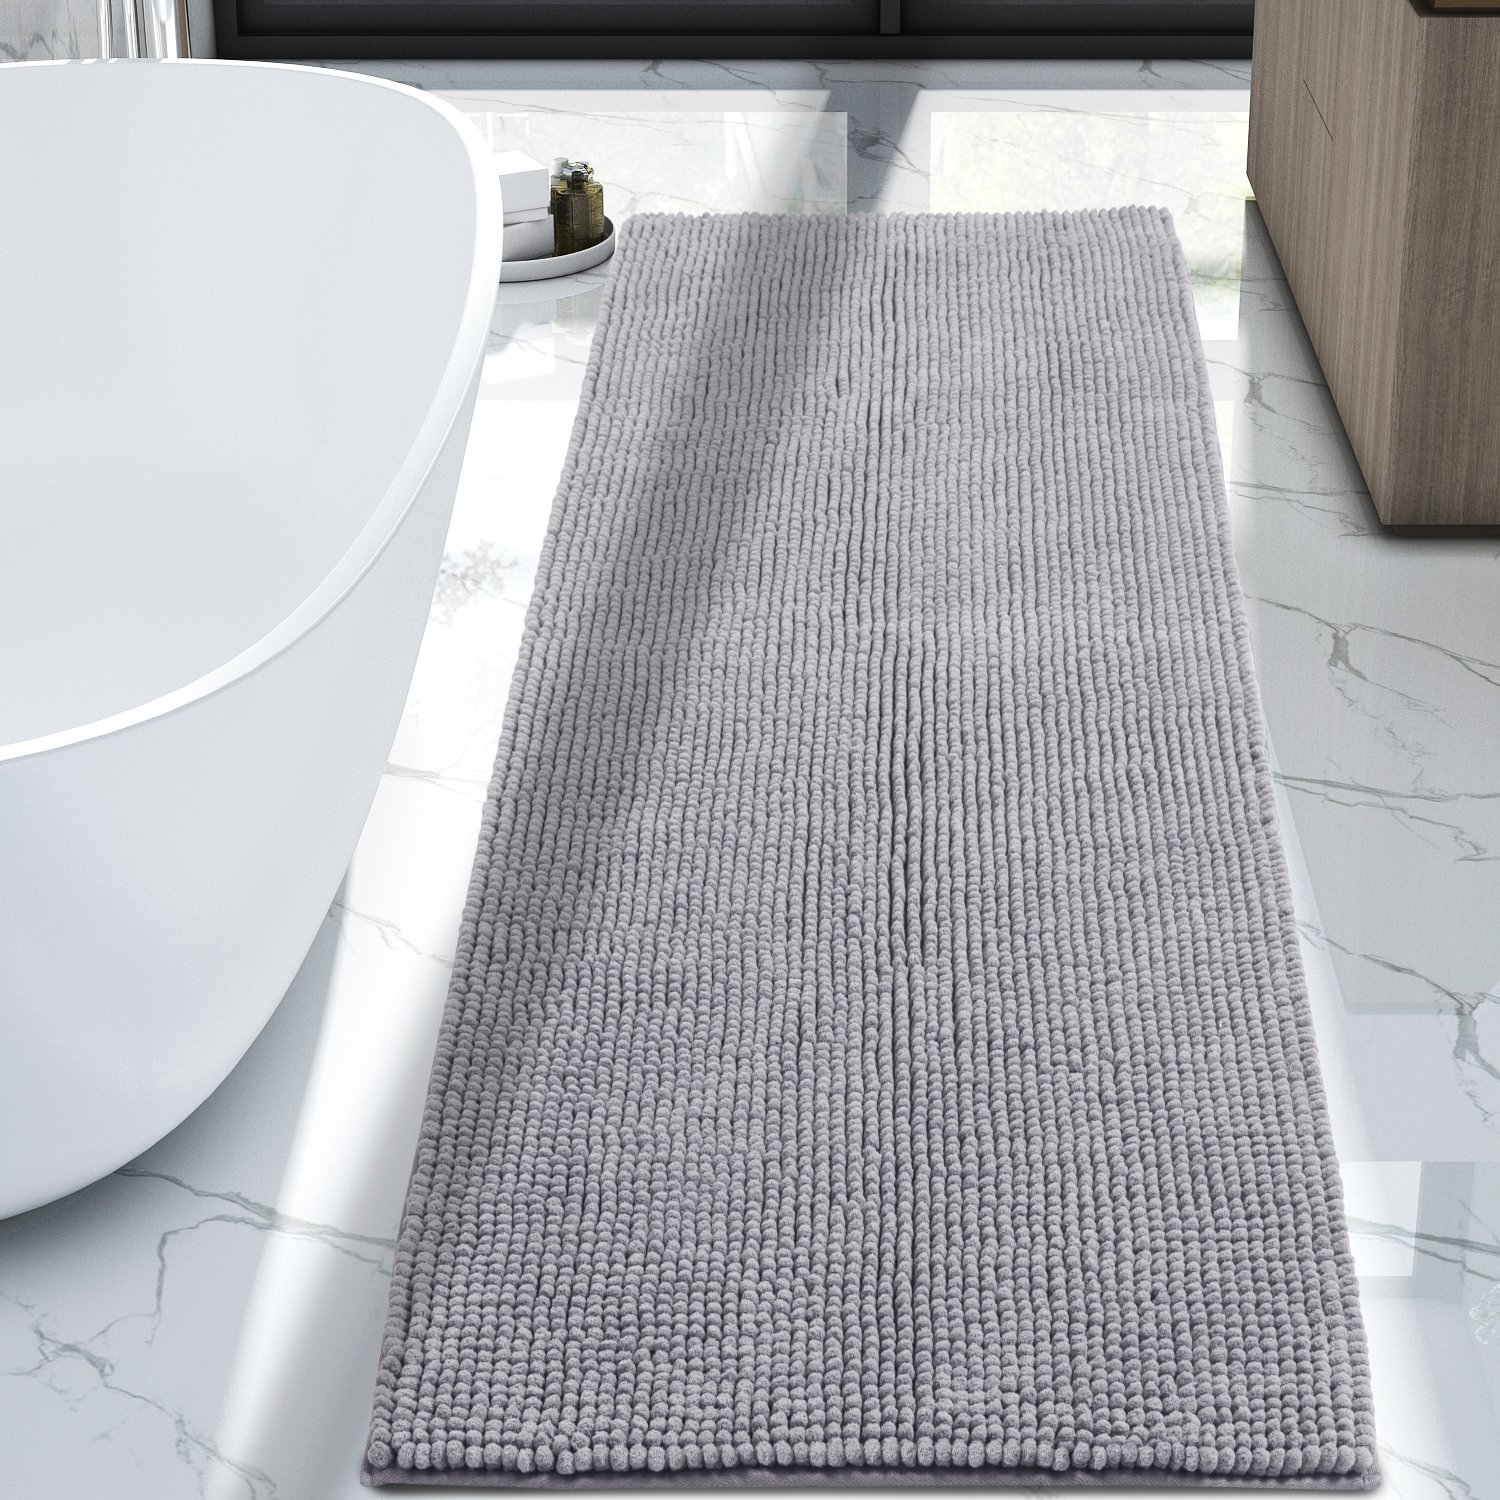 Lifewit 70.9'' x 25.6'' Bath Runner Rug Area Chenille Mat Rugs Bathroom Living Room Kitchen Machine Washable Shag Rug Grey